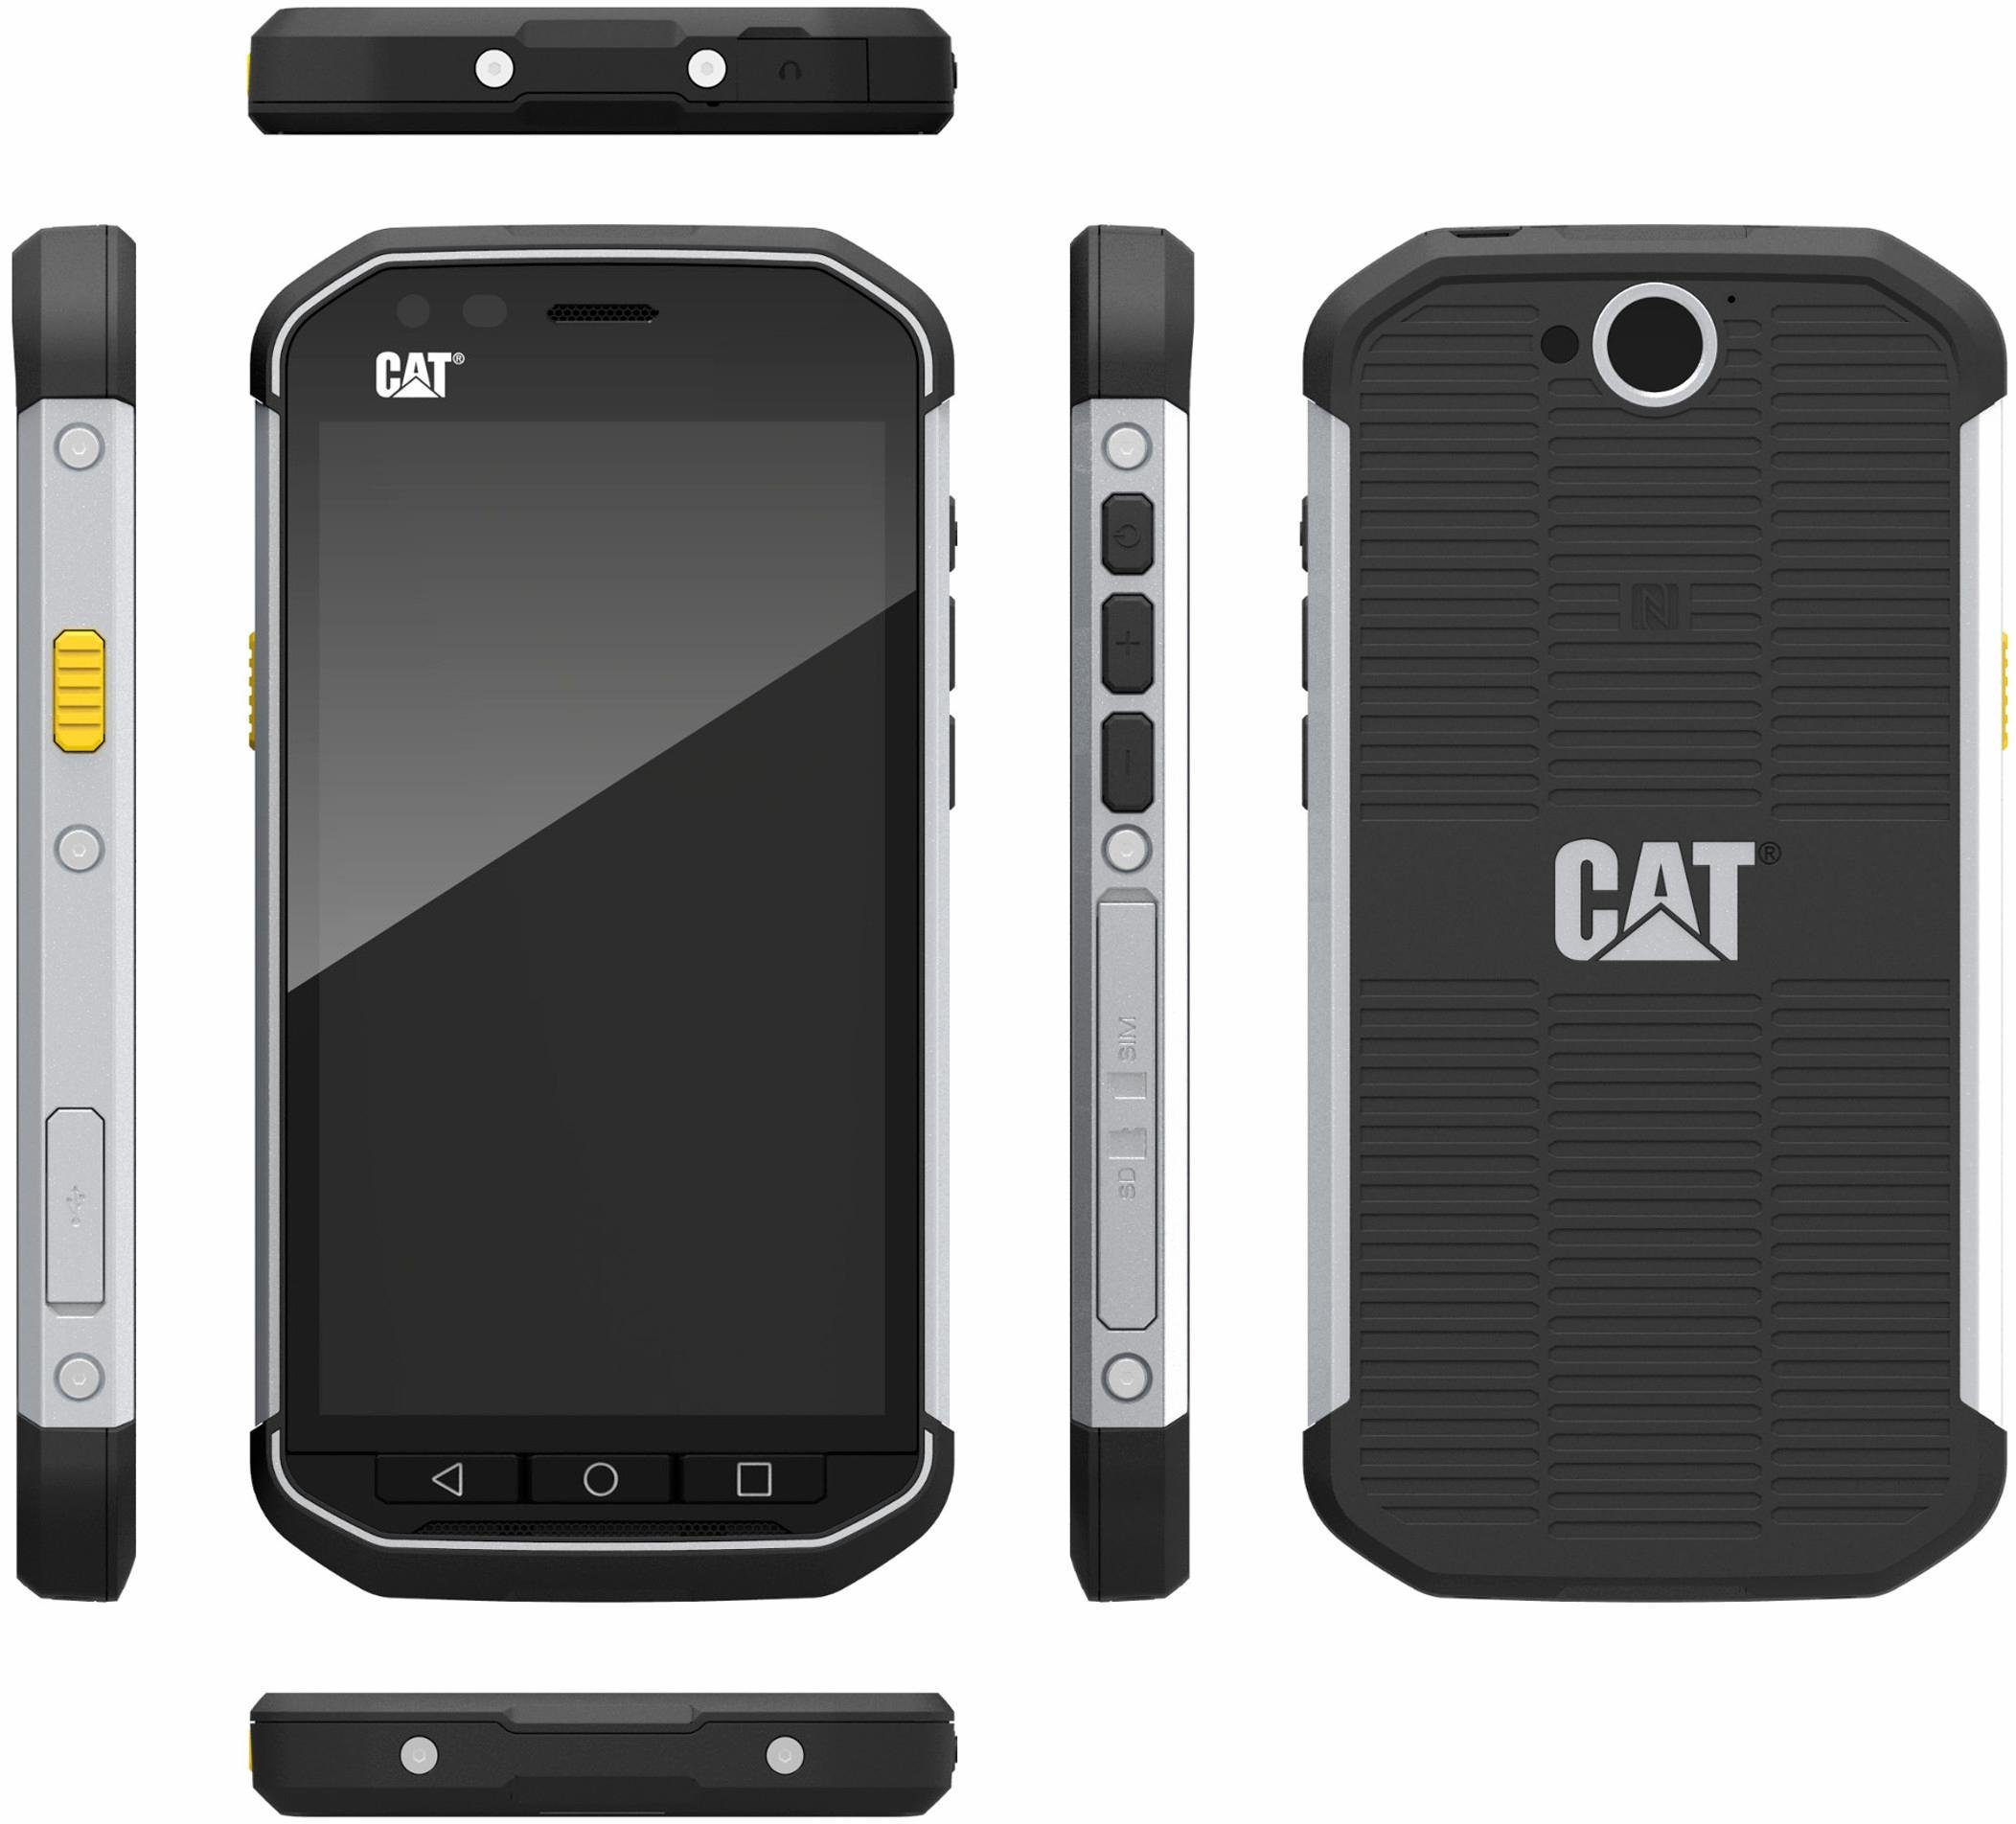 CAT S40 Outdoor-Smartphone, 11,9 cm (4,7 Zoll) Display, LTE (4G), Android 5.1 Lollipop, 8 Megapixel